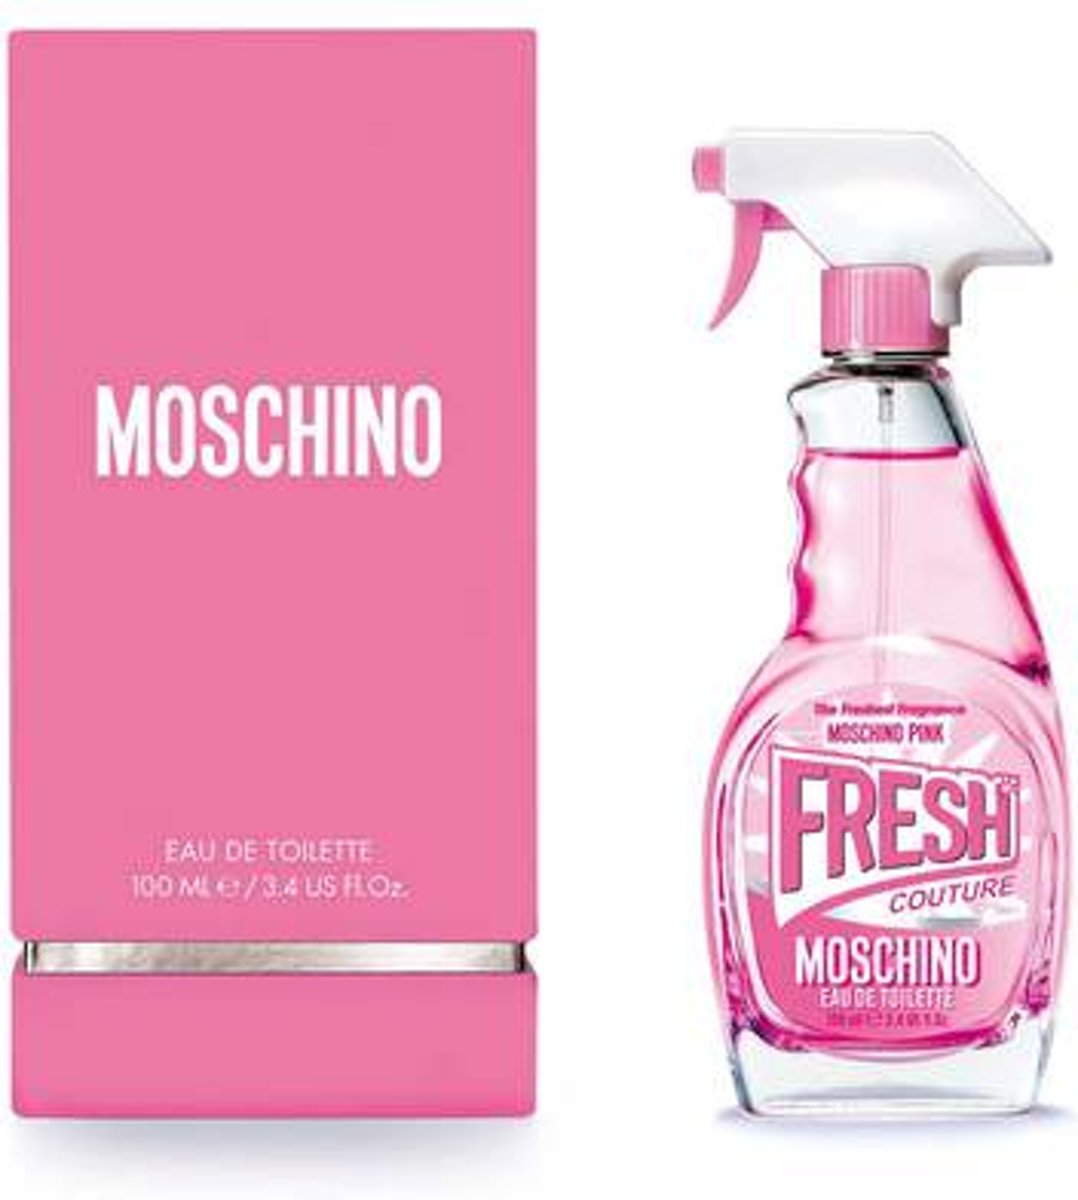 Moschino Fresh Couture Pink Eau De Toilette Spray 100ml Set 4 Pieces 2019